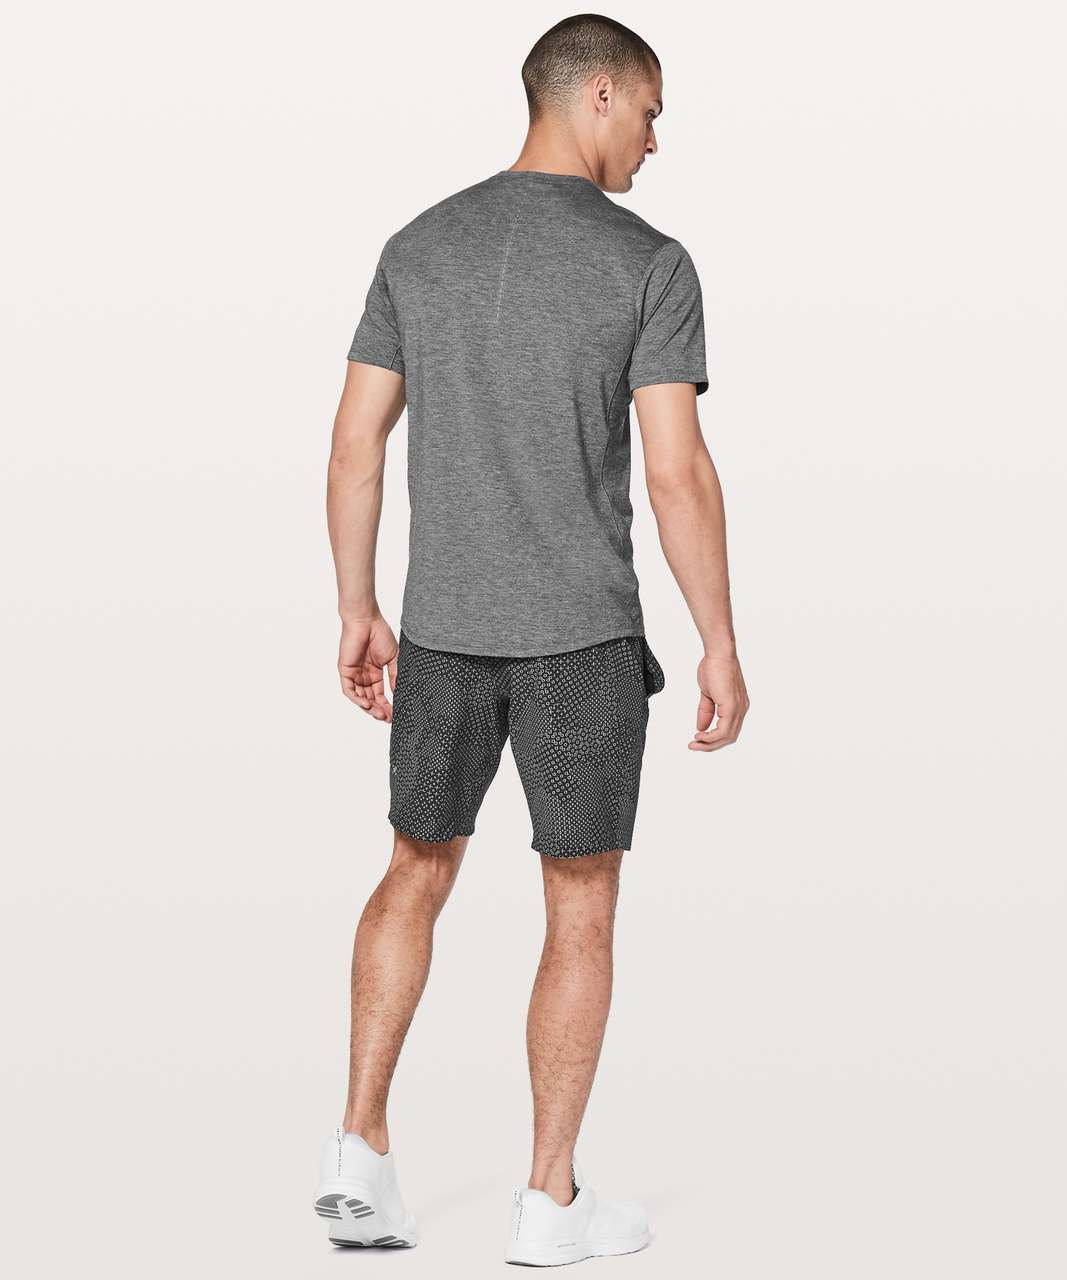 "Lululemon In Mind Short 9"" - Stitch Camo Ice Grey Deep Coal"